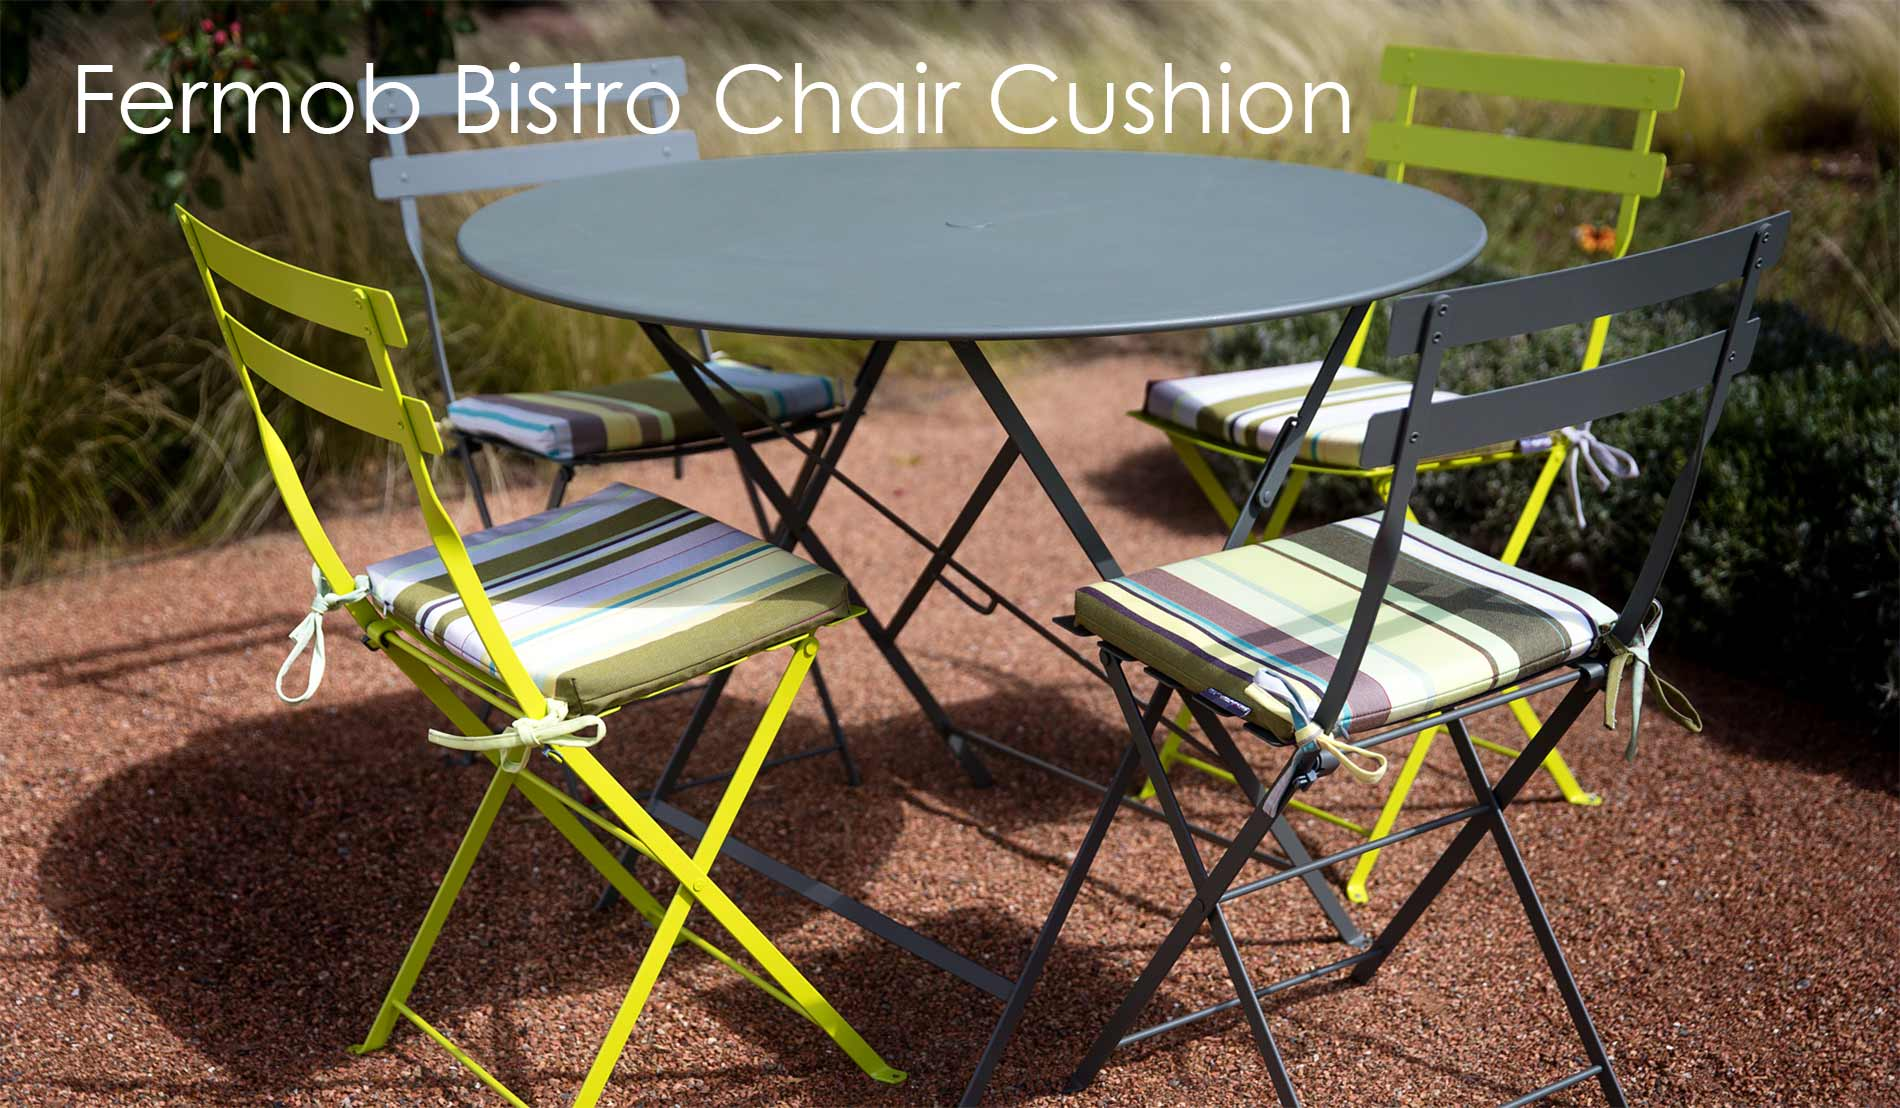 Bistro Chair Cushion for Fermob Bistro chairs – Bon Marché